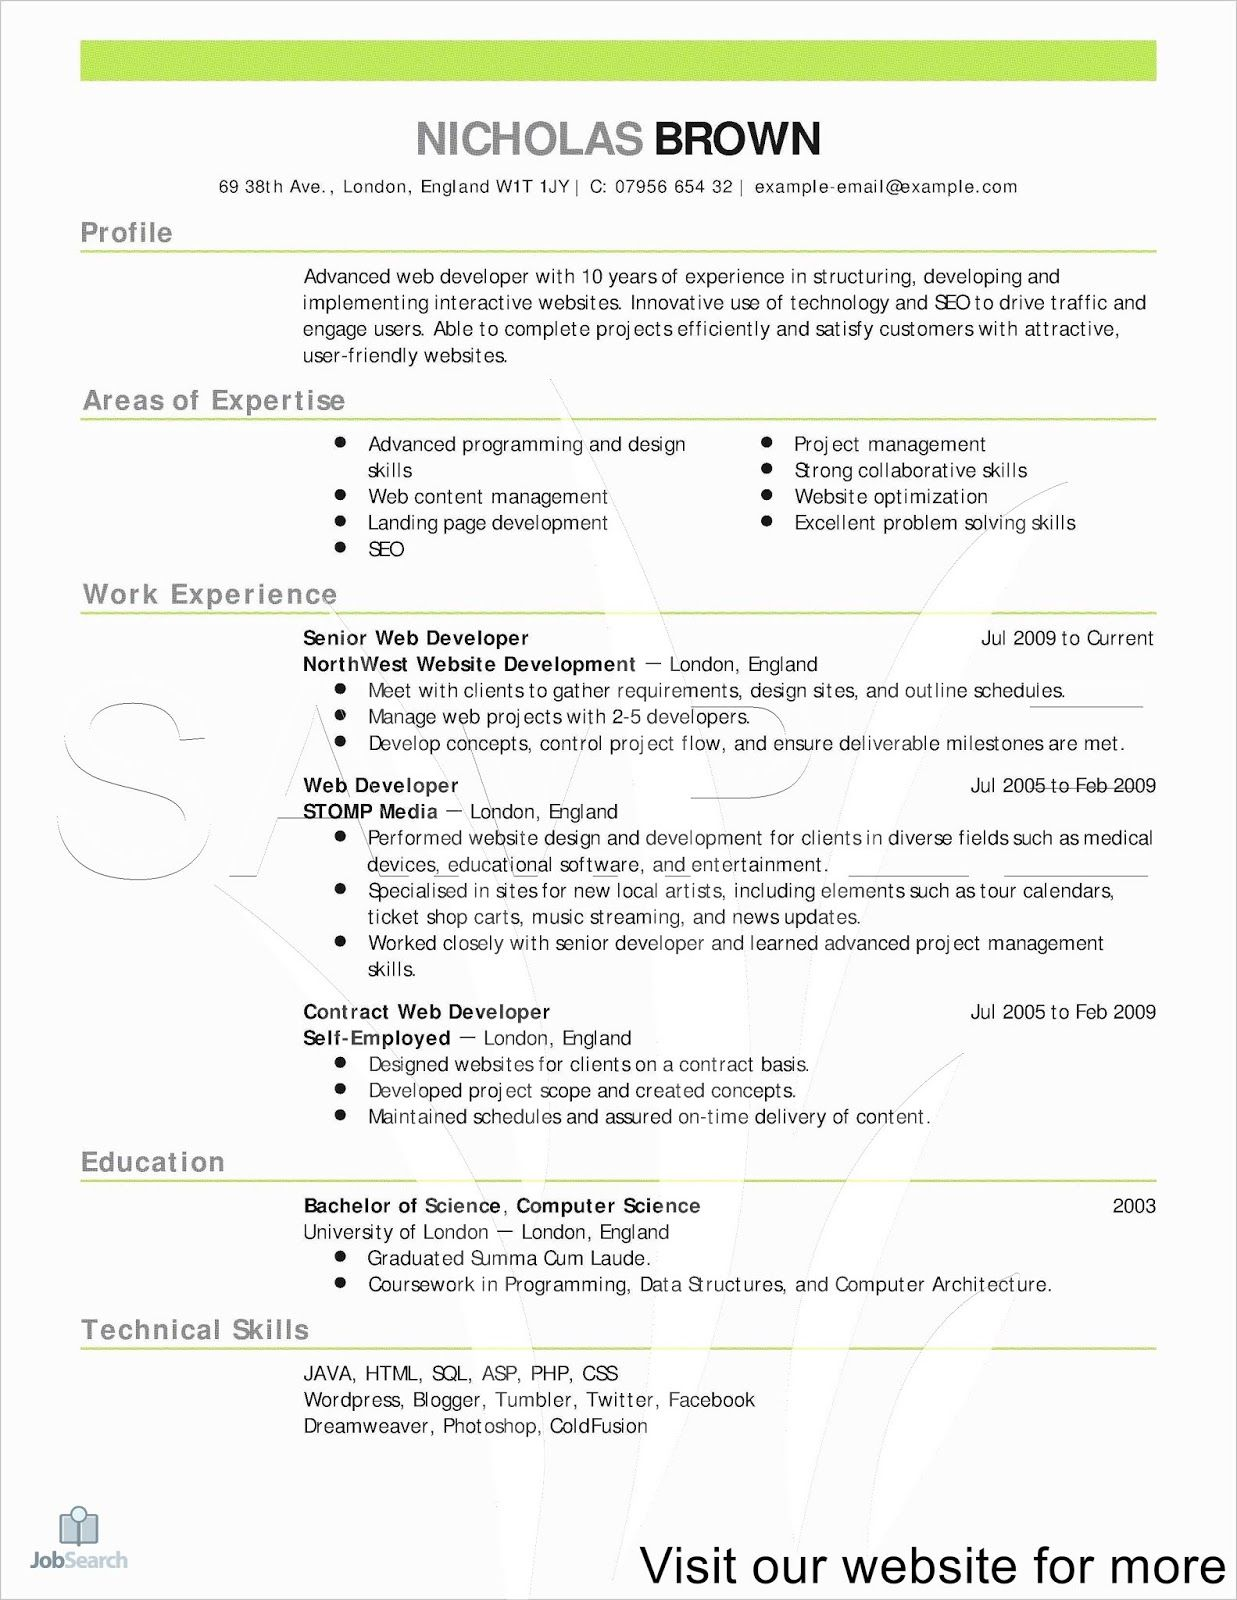 Indeed Jobs Resume Template Free Downloadable, resume